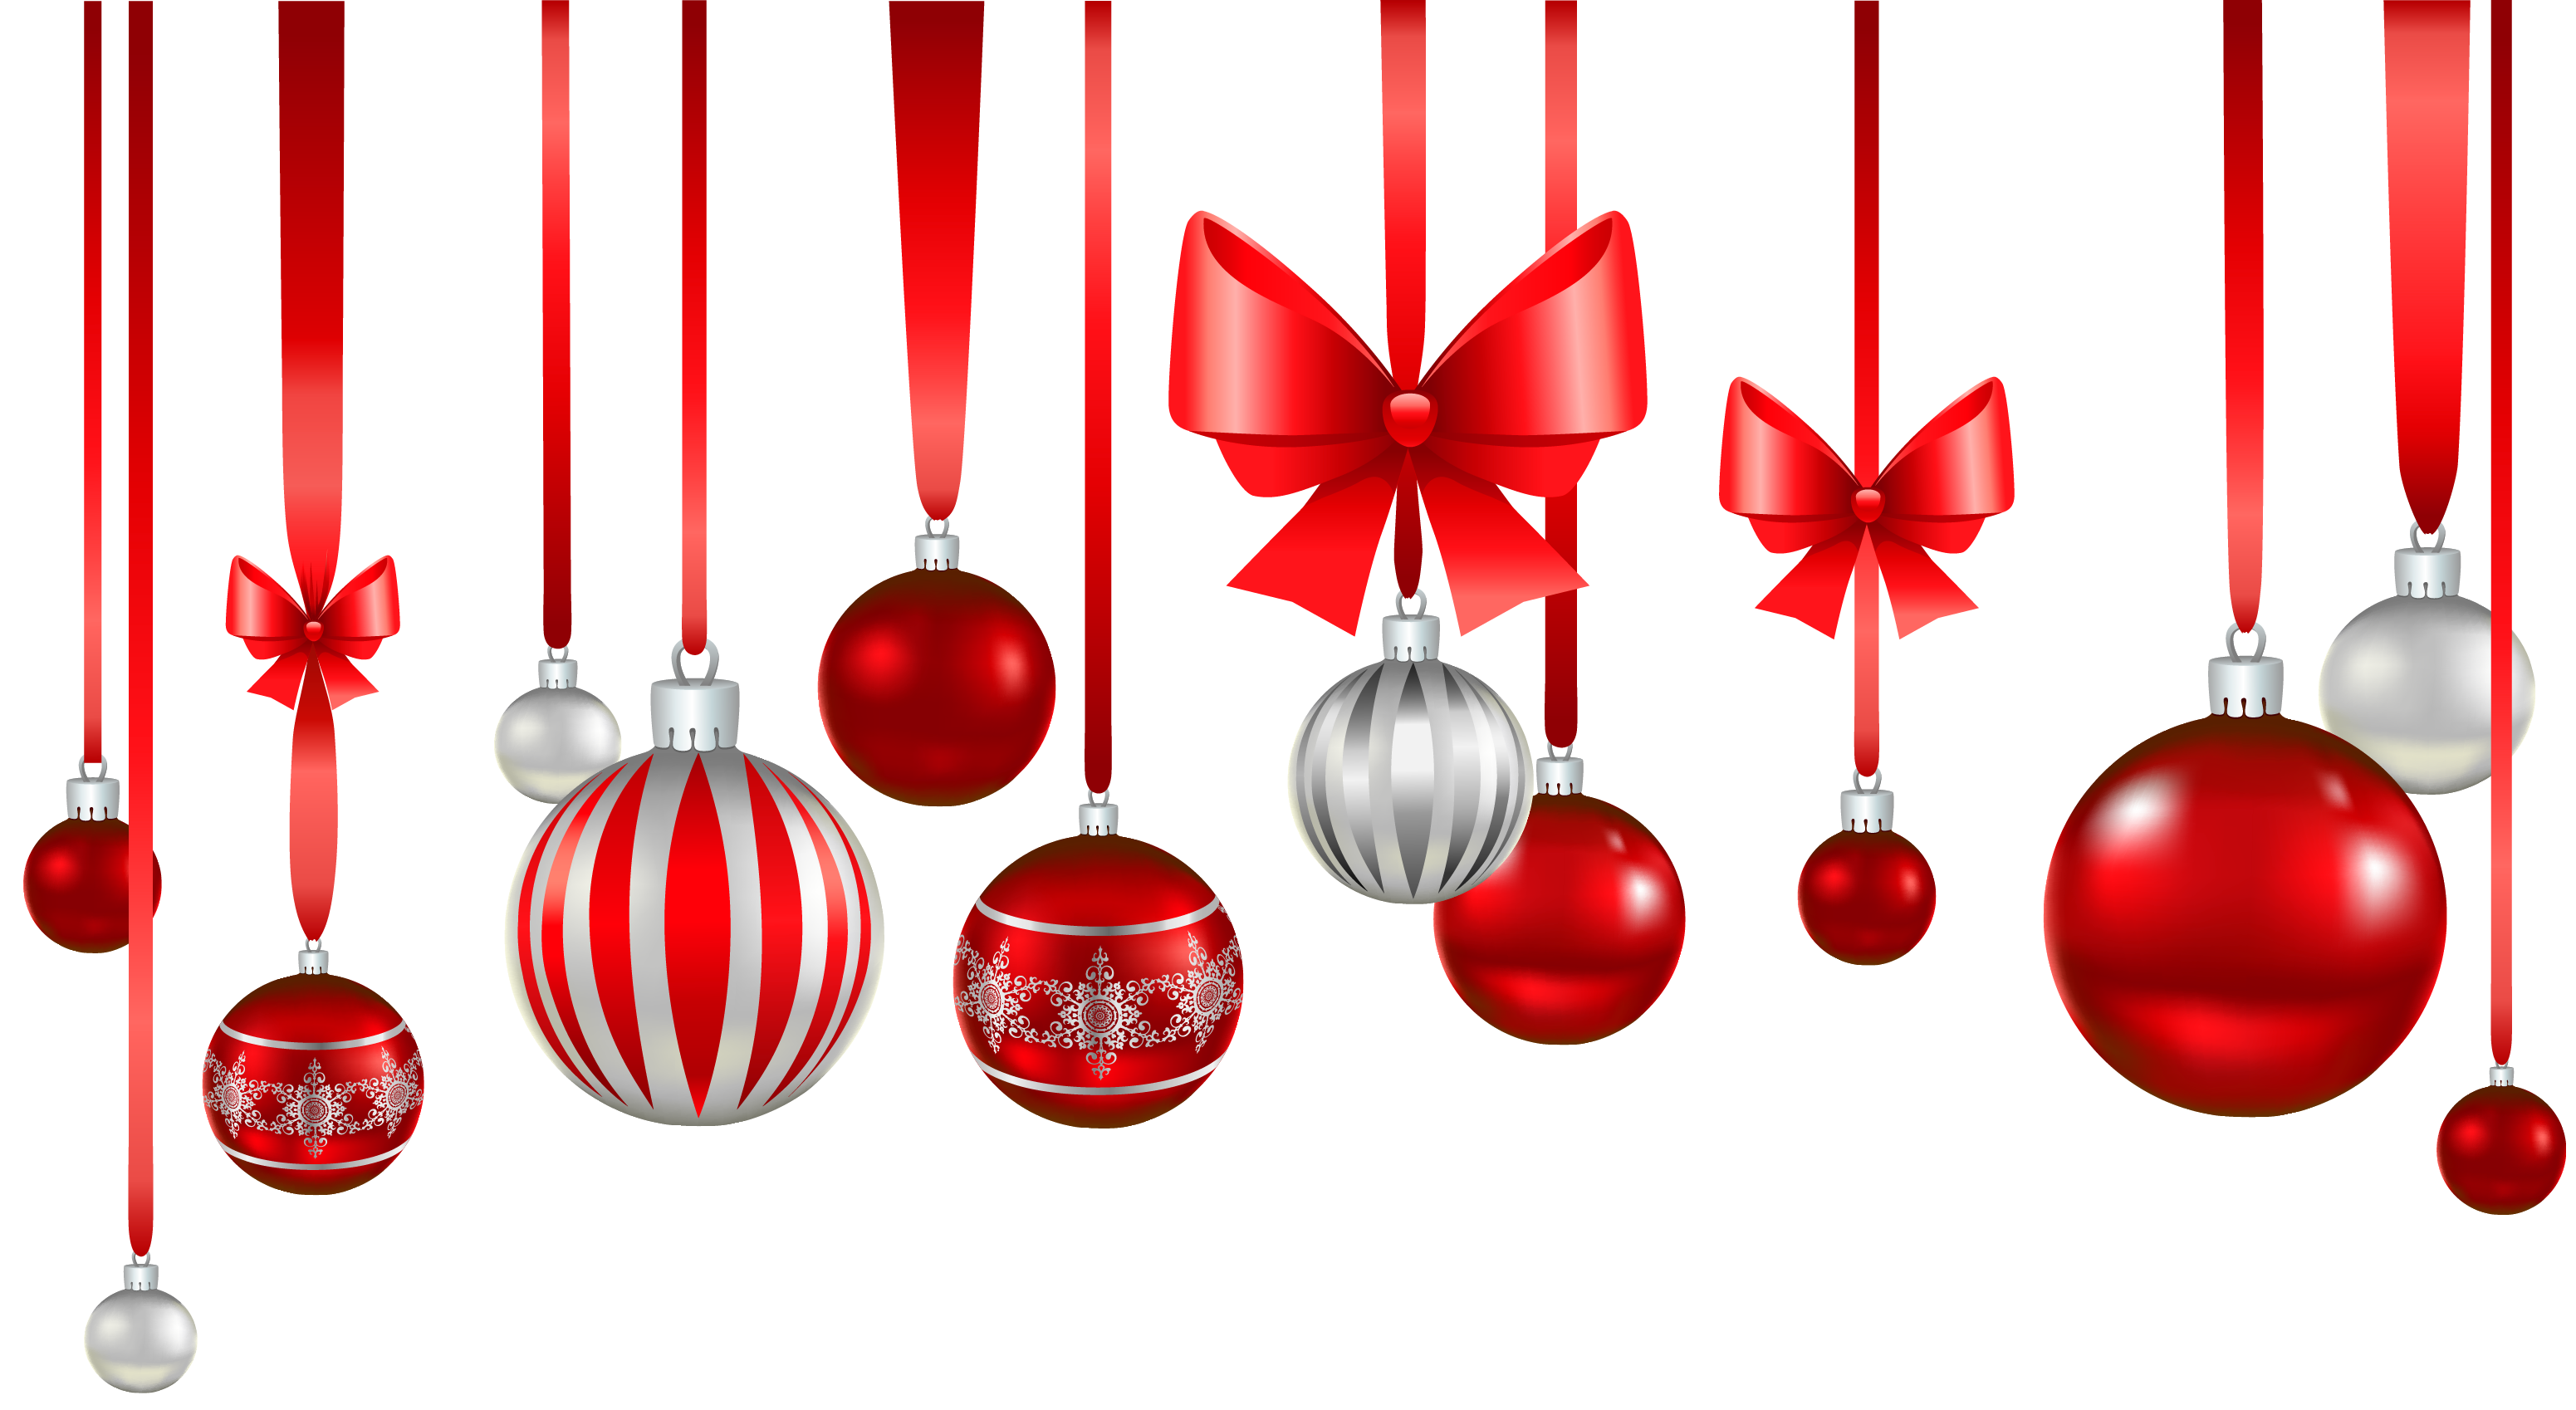 Ornaments christmas png. Ornament transparent images download